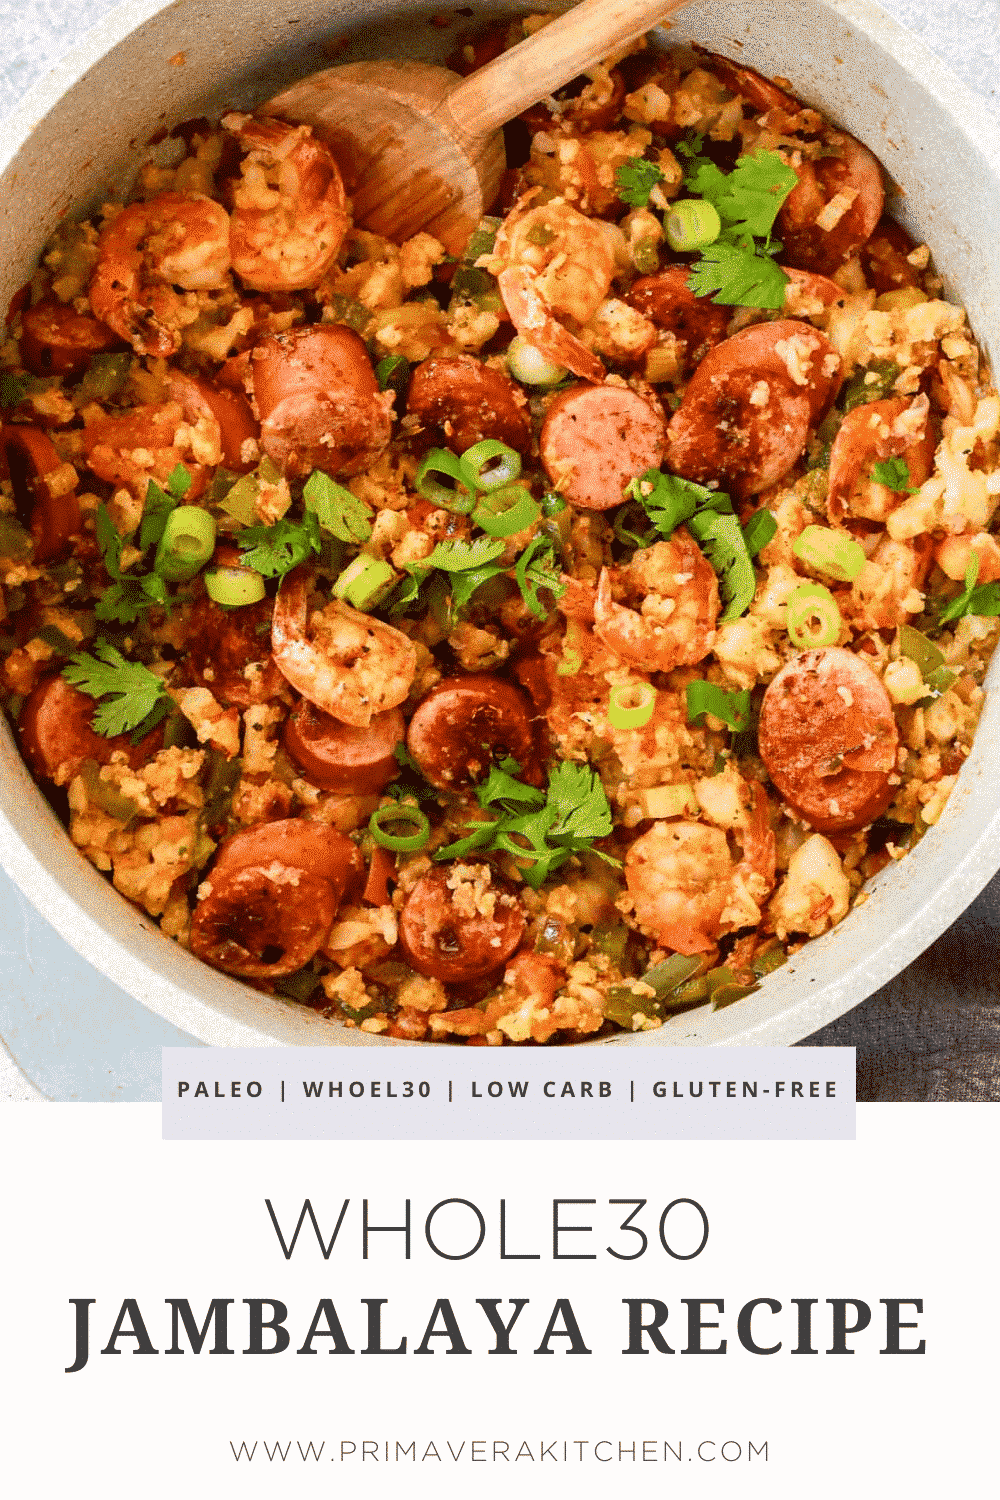 Whole30 Jambalaya Recipe